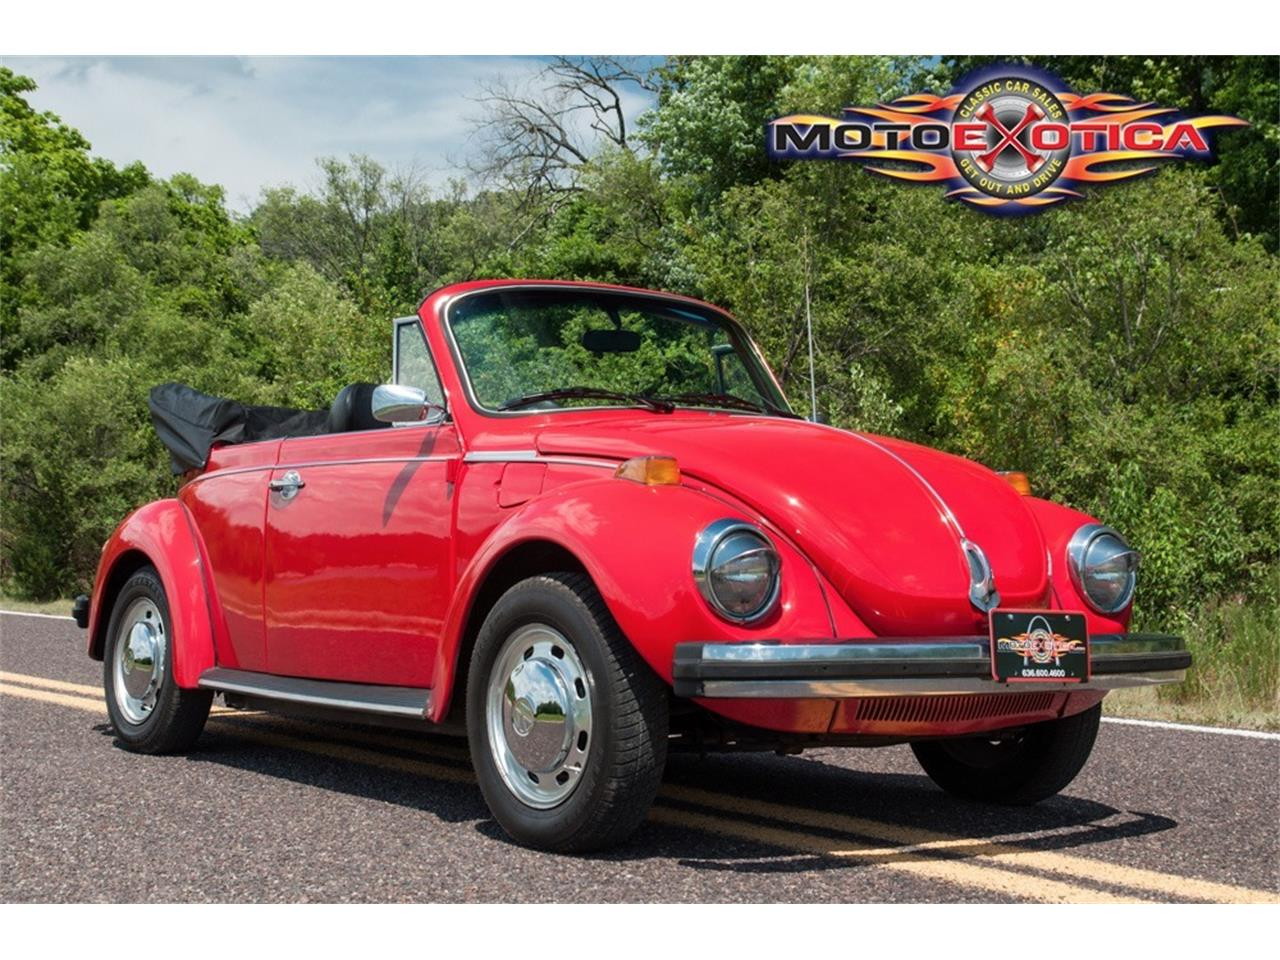 Large Picture of '78 Volkswagen Super Beetle located in Missouri Offered by MotoeXotica Classic Cars - LG5A